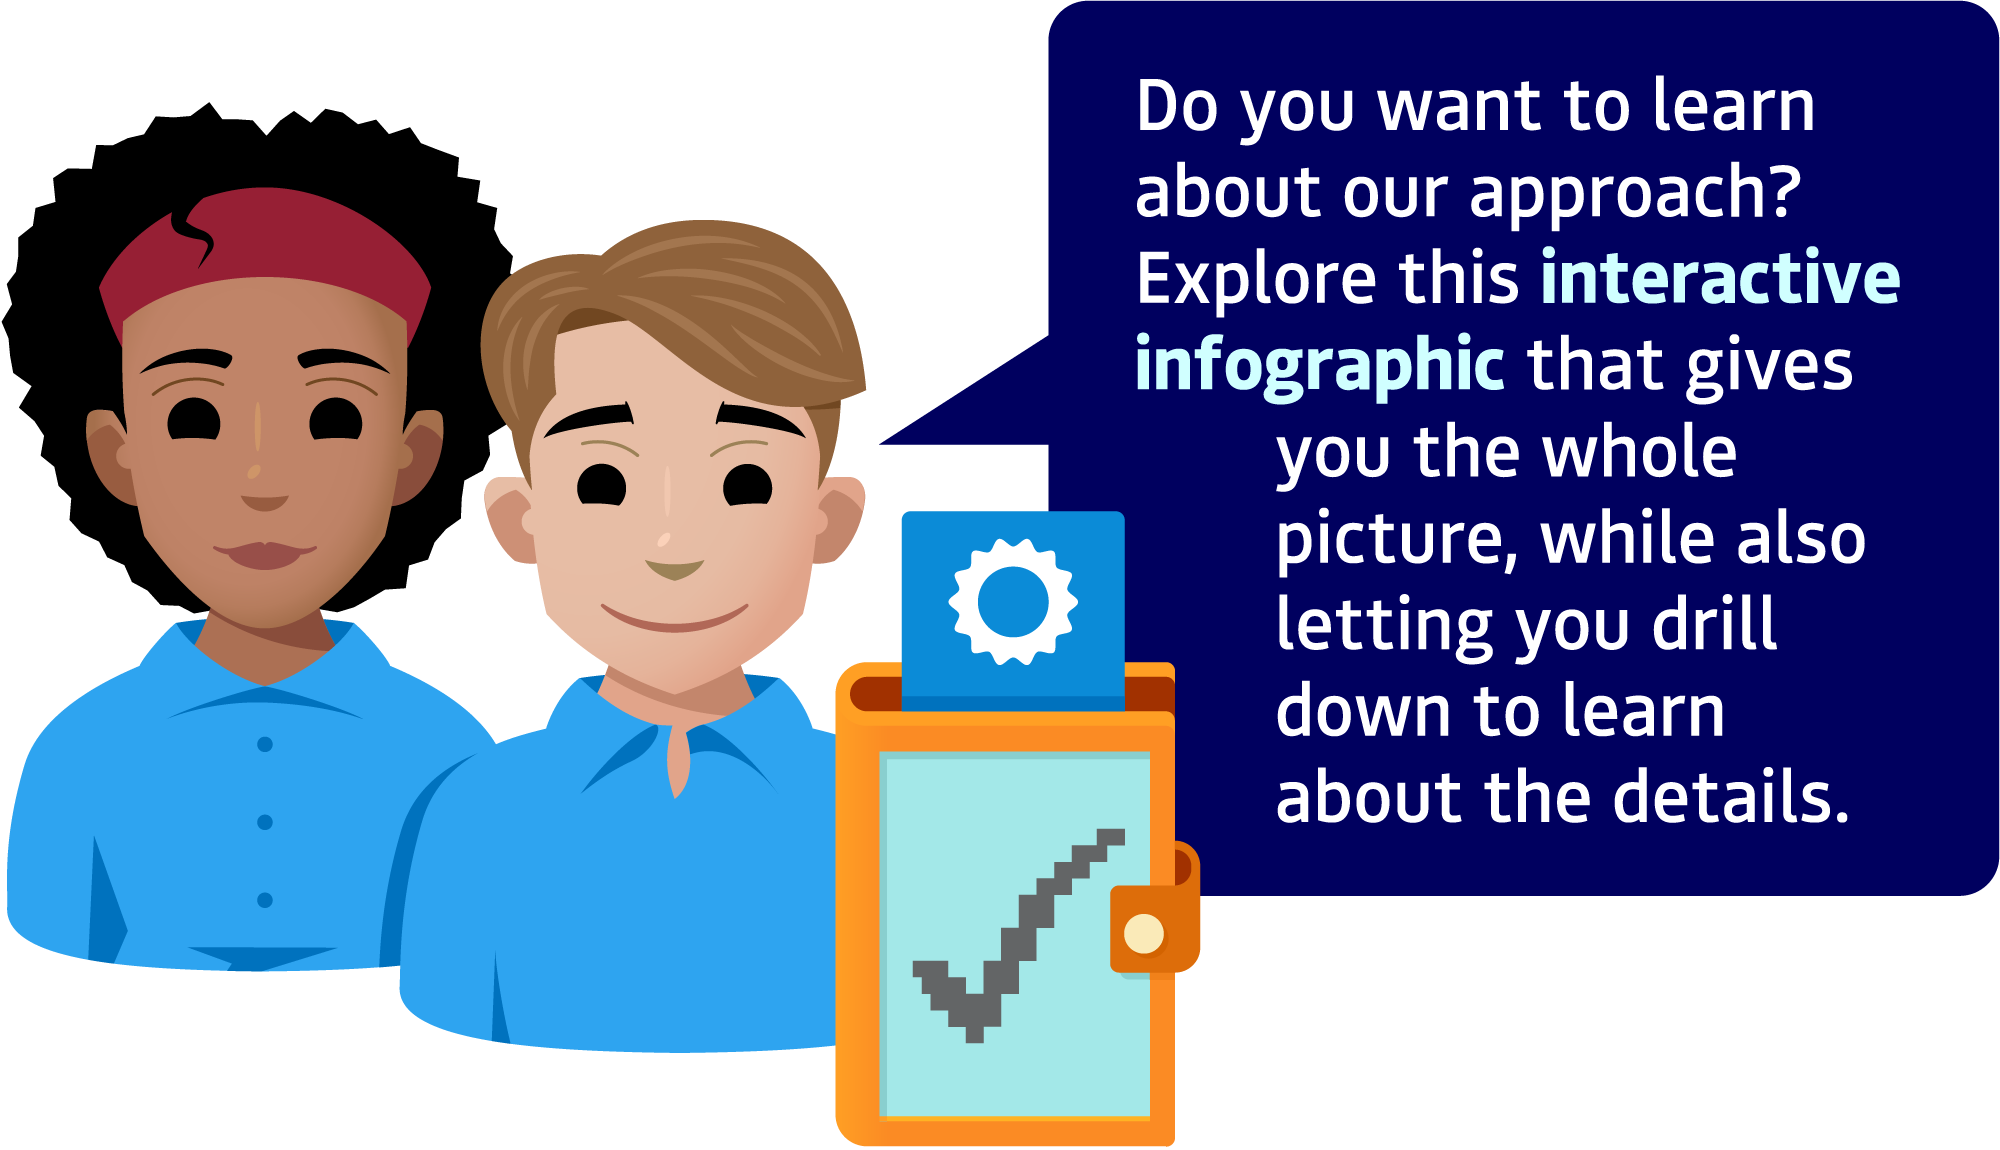 Do you want to learn about our approach? Explore this interactive infographic that gives you the whole picture, while also letting you drill down to learn about the details.